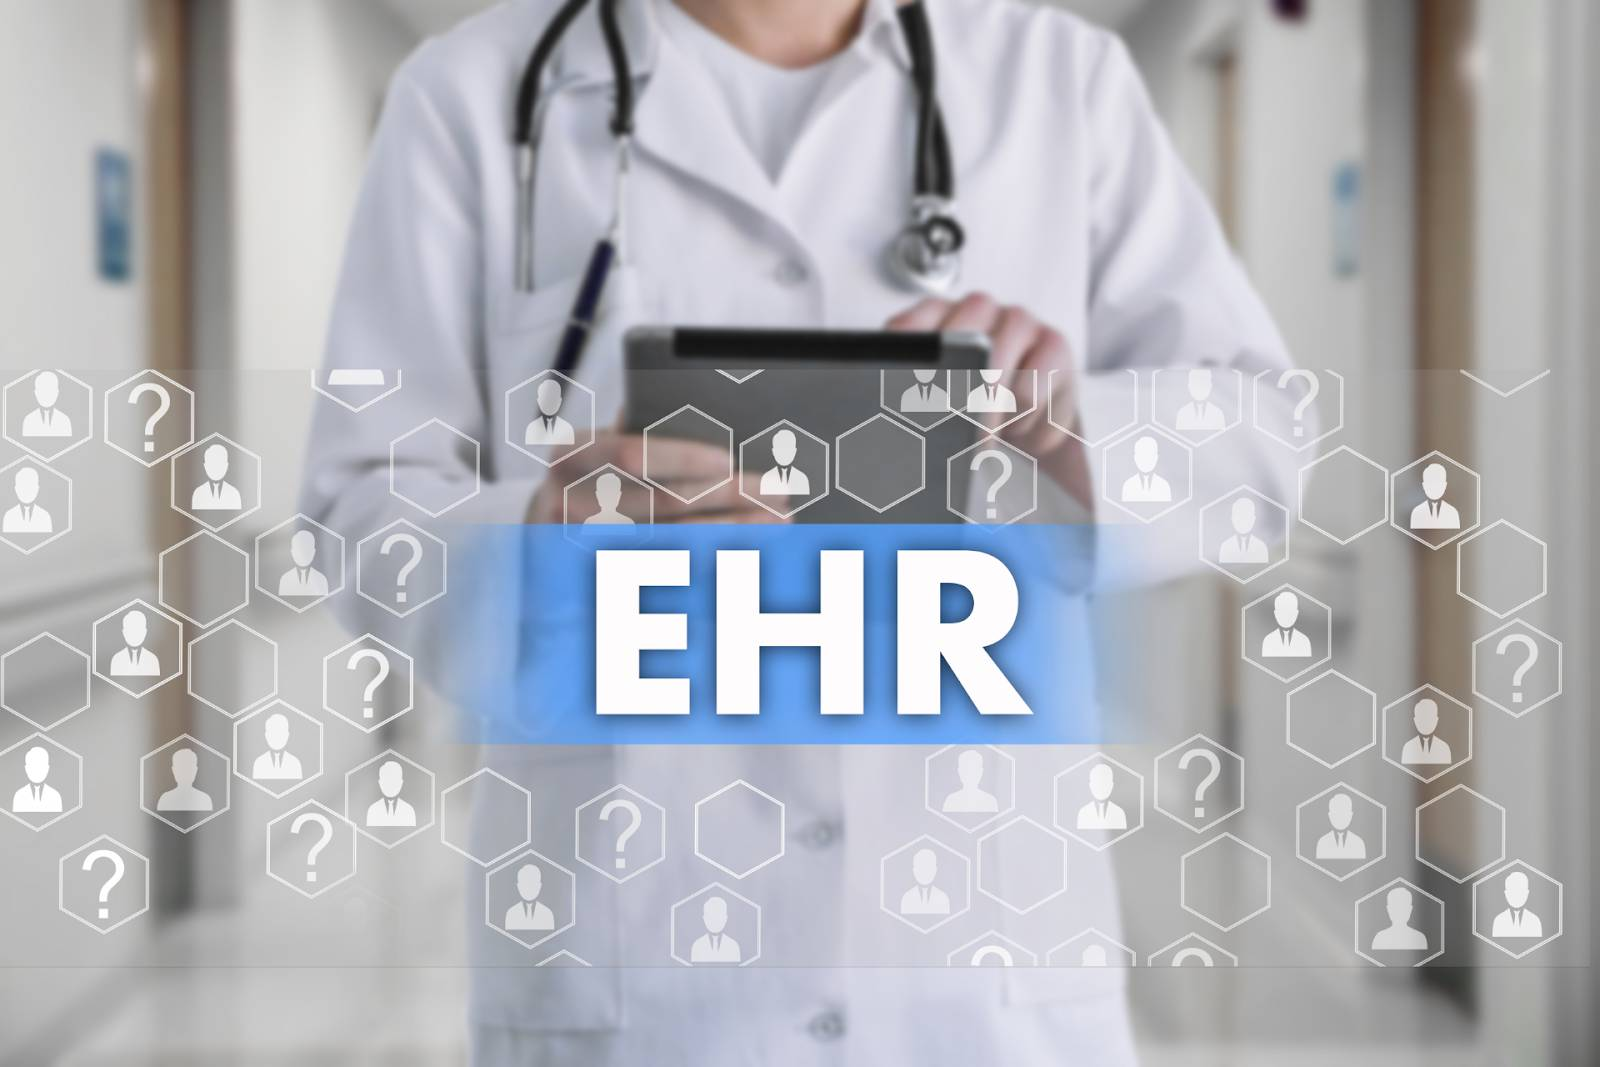 What is an EHR Experience That Physicians Want?